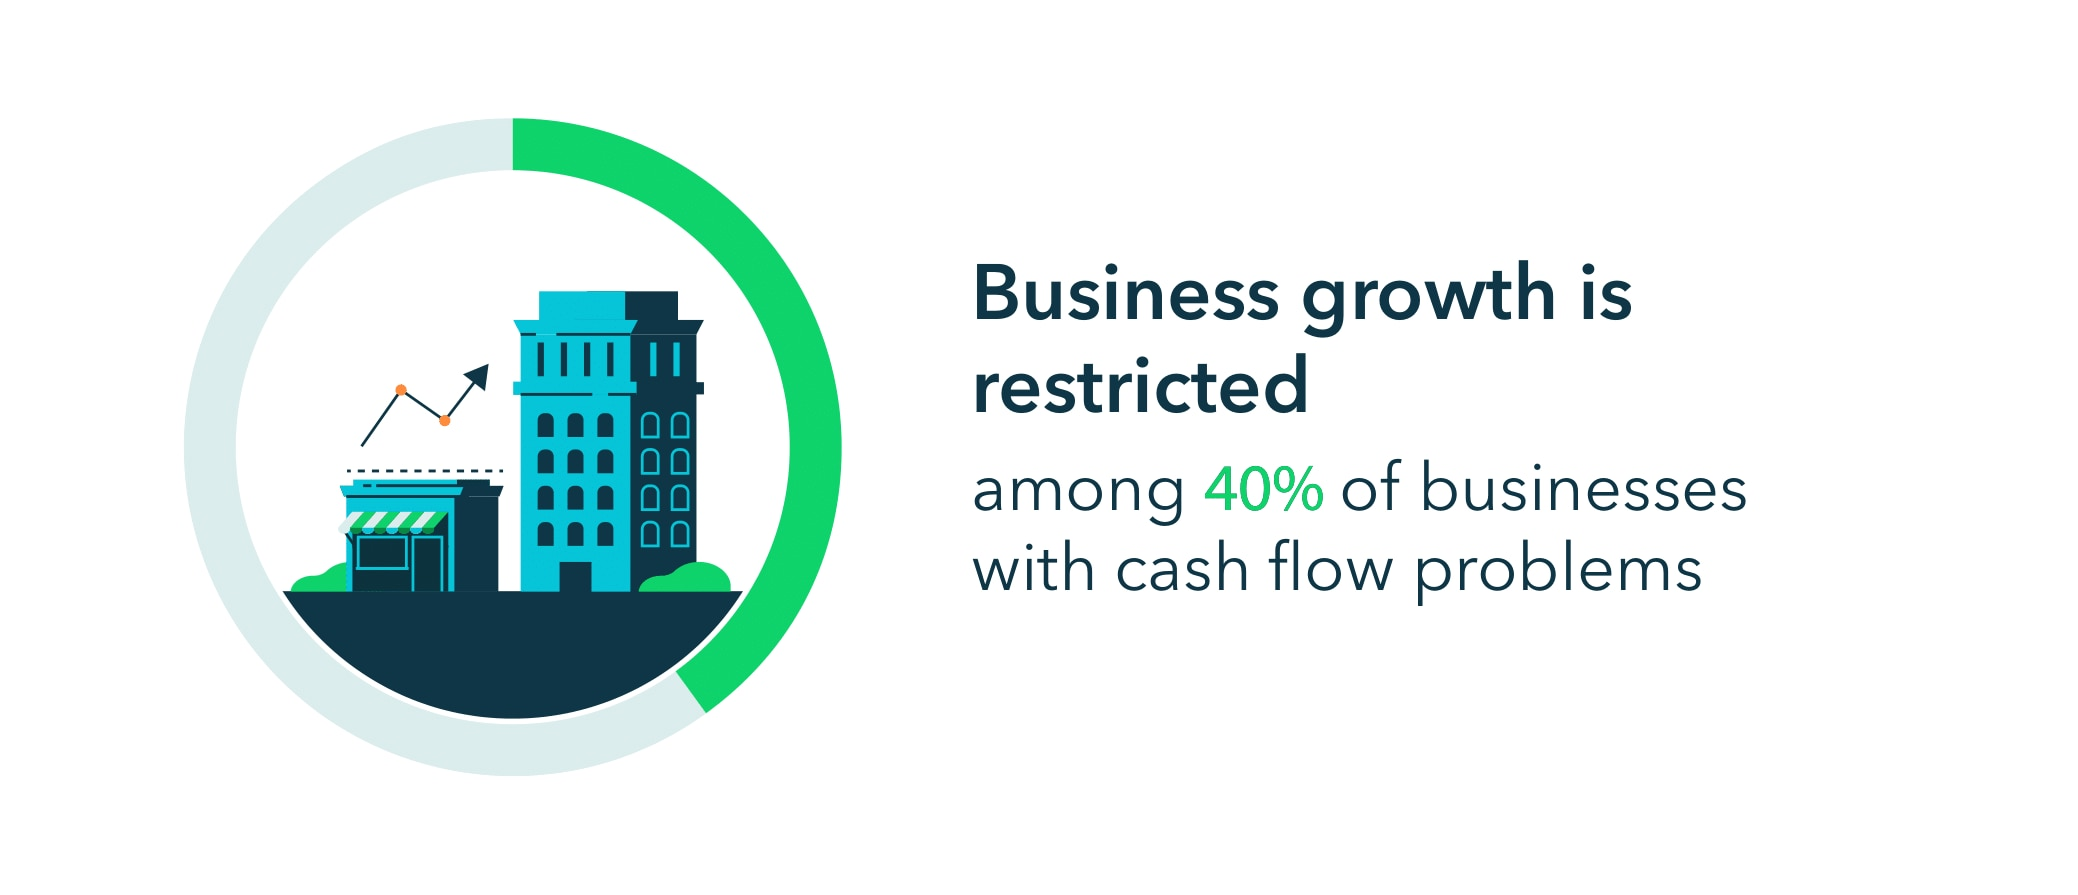 Business growth is restricted among 40% of businesses with cash flow problems.